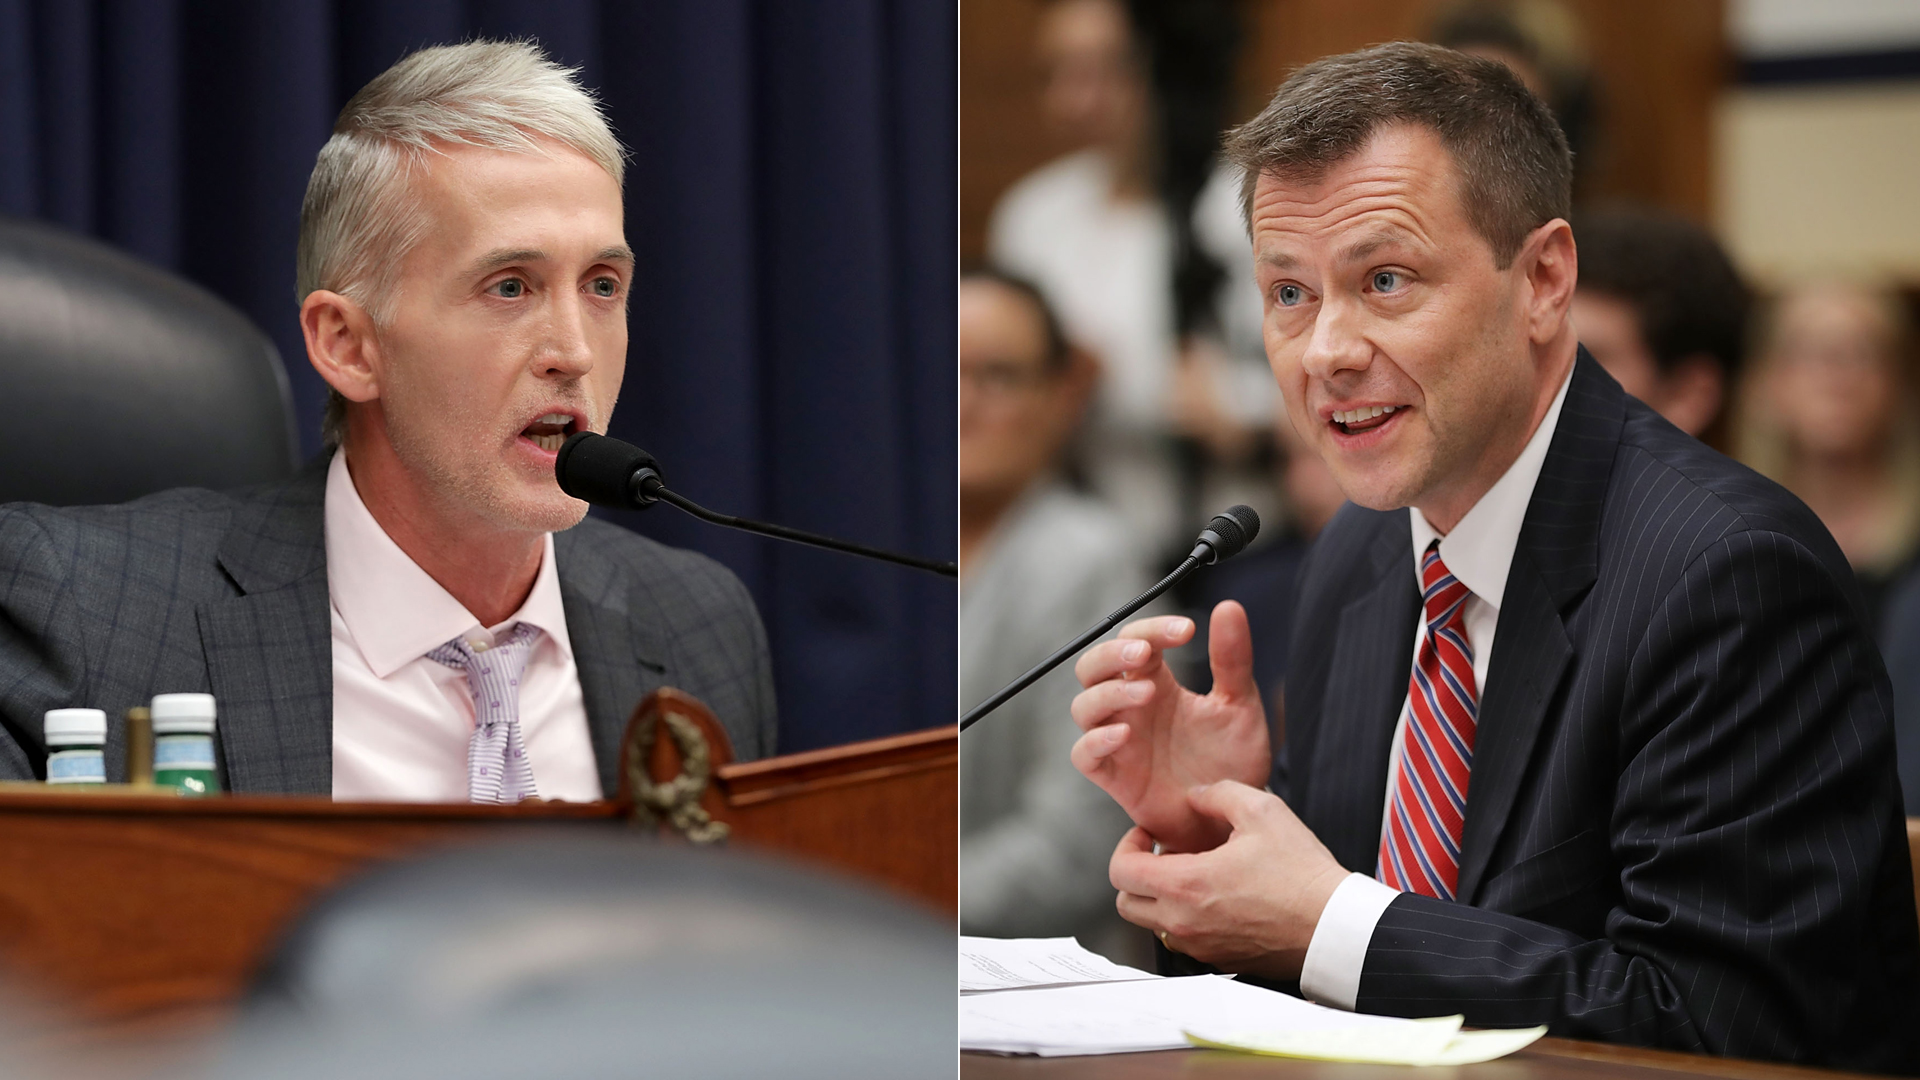 Left, House Oversight and Government Reform Committee Chairman Trey Gowdy (R-SC) questions Deputy Assistant FBI Director Peter Strzok, right, during a joint hearing of his committee and the House Judiciary Committee in the Rayburn House Office Building on Capitol Hill July 12, 2018. (Credit: Chip Somodevilla/Getty Images)